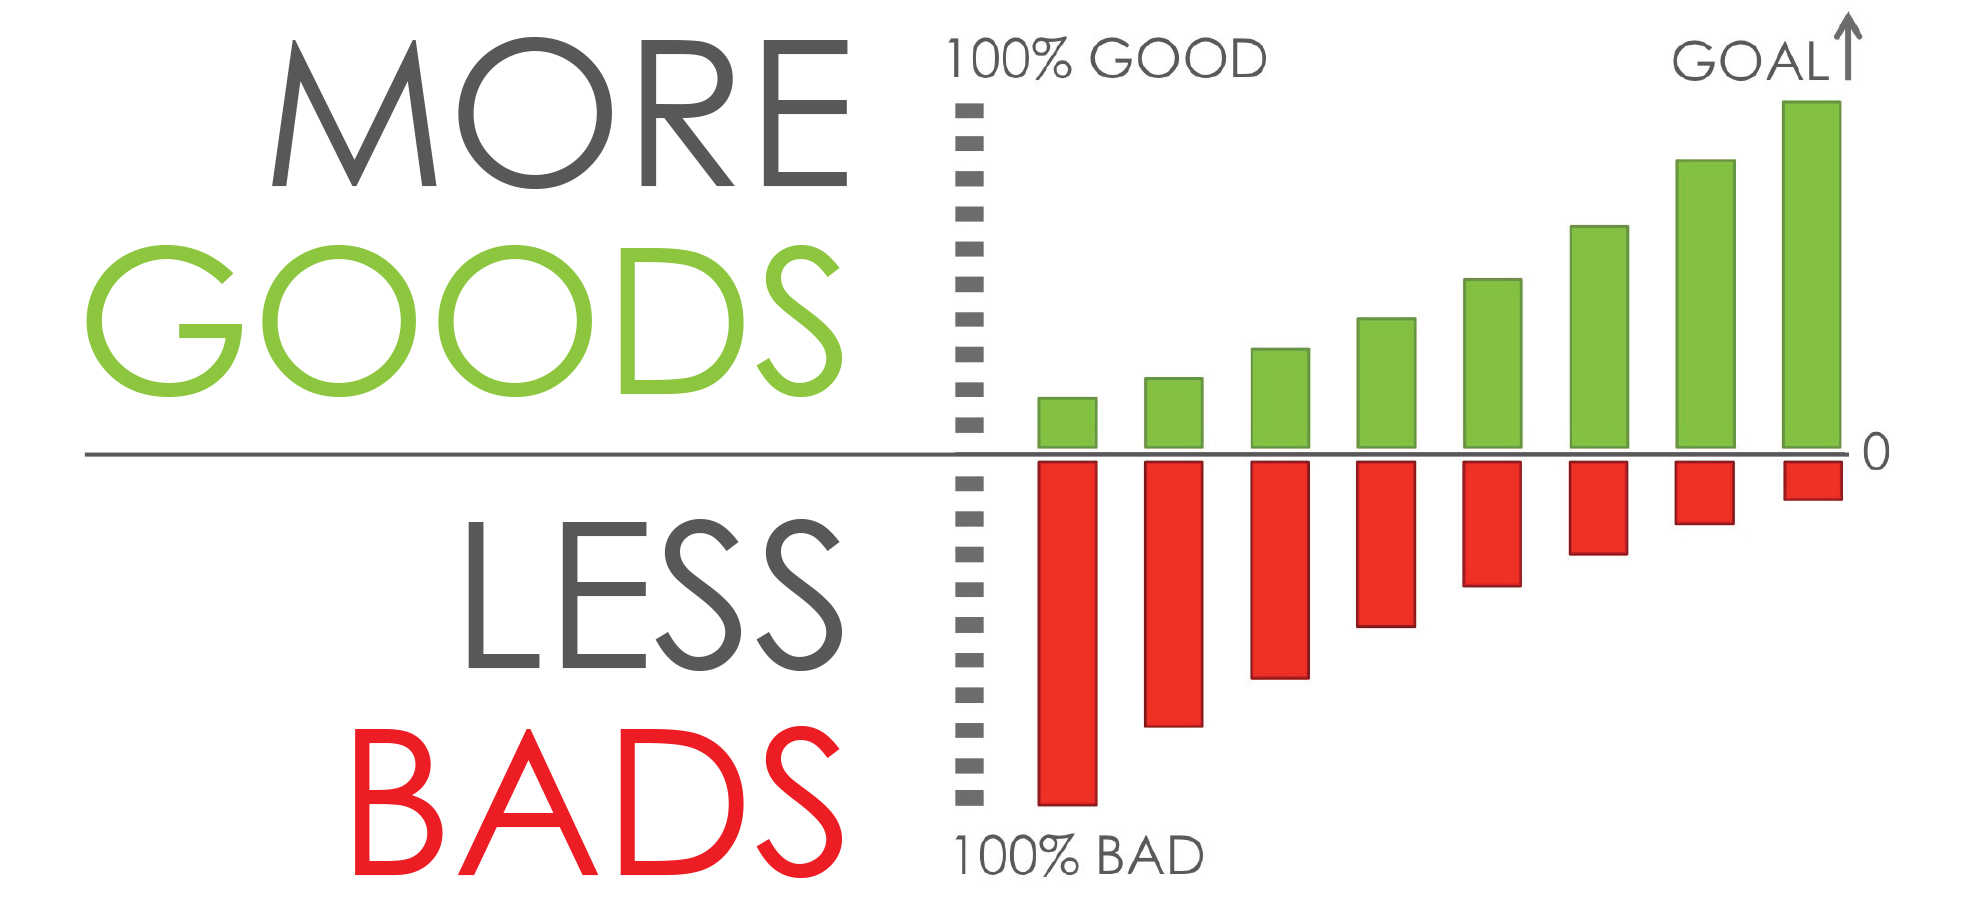 More Goods Less Bads